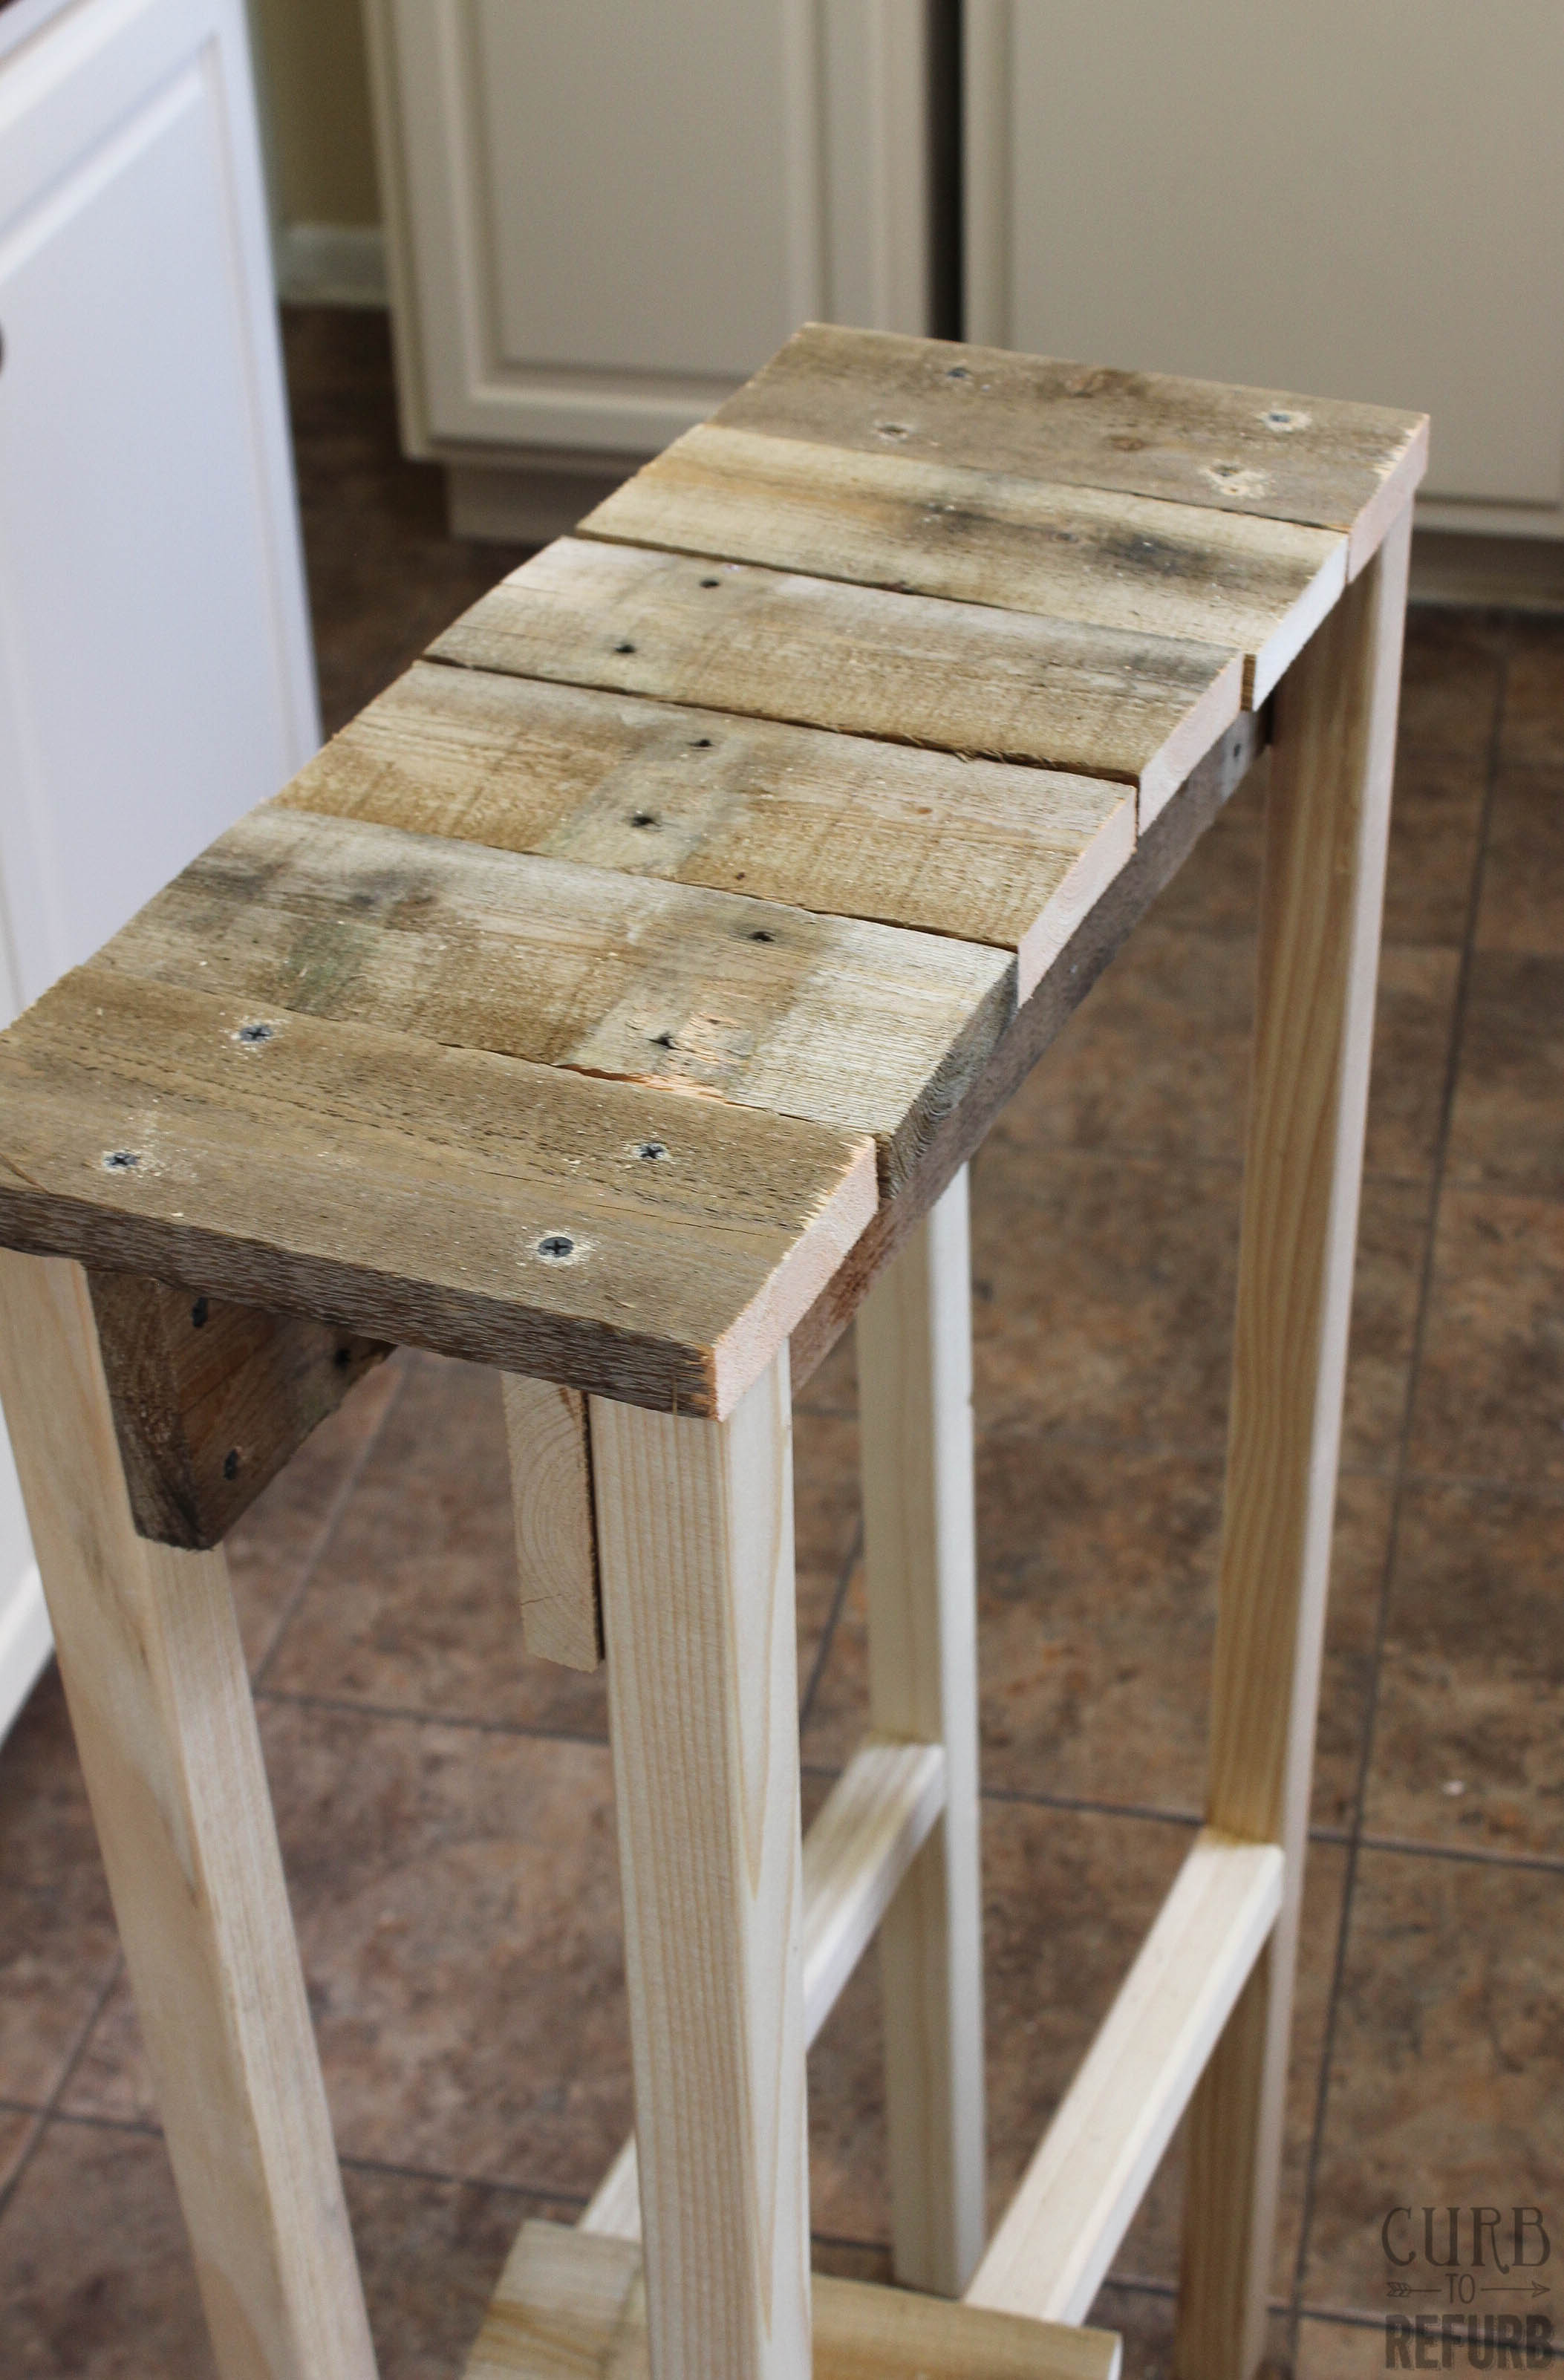 Diy crate console table - Diy Console Table From A Pallet By Curb To Refurb Featured On Remodelaholic